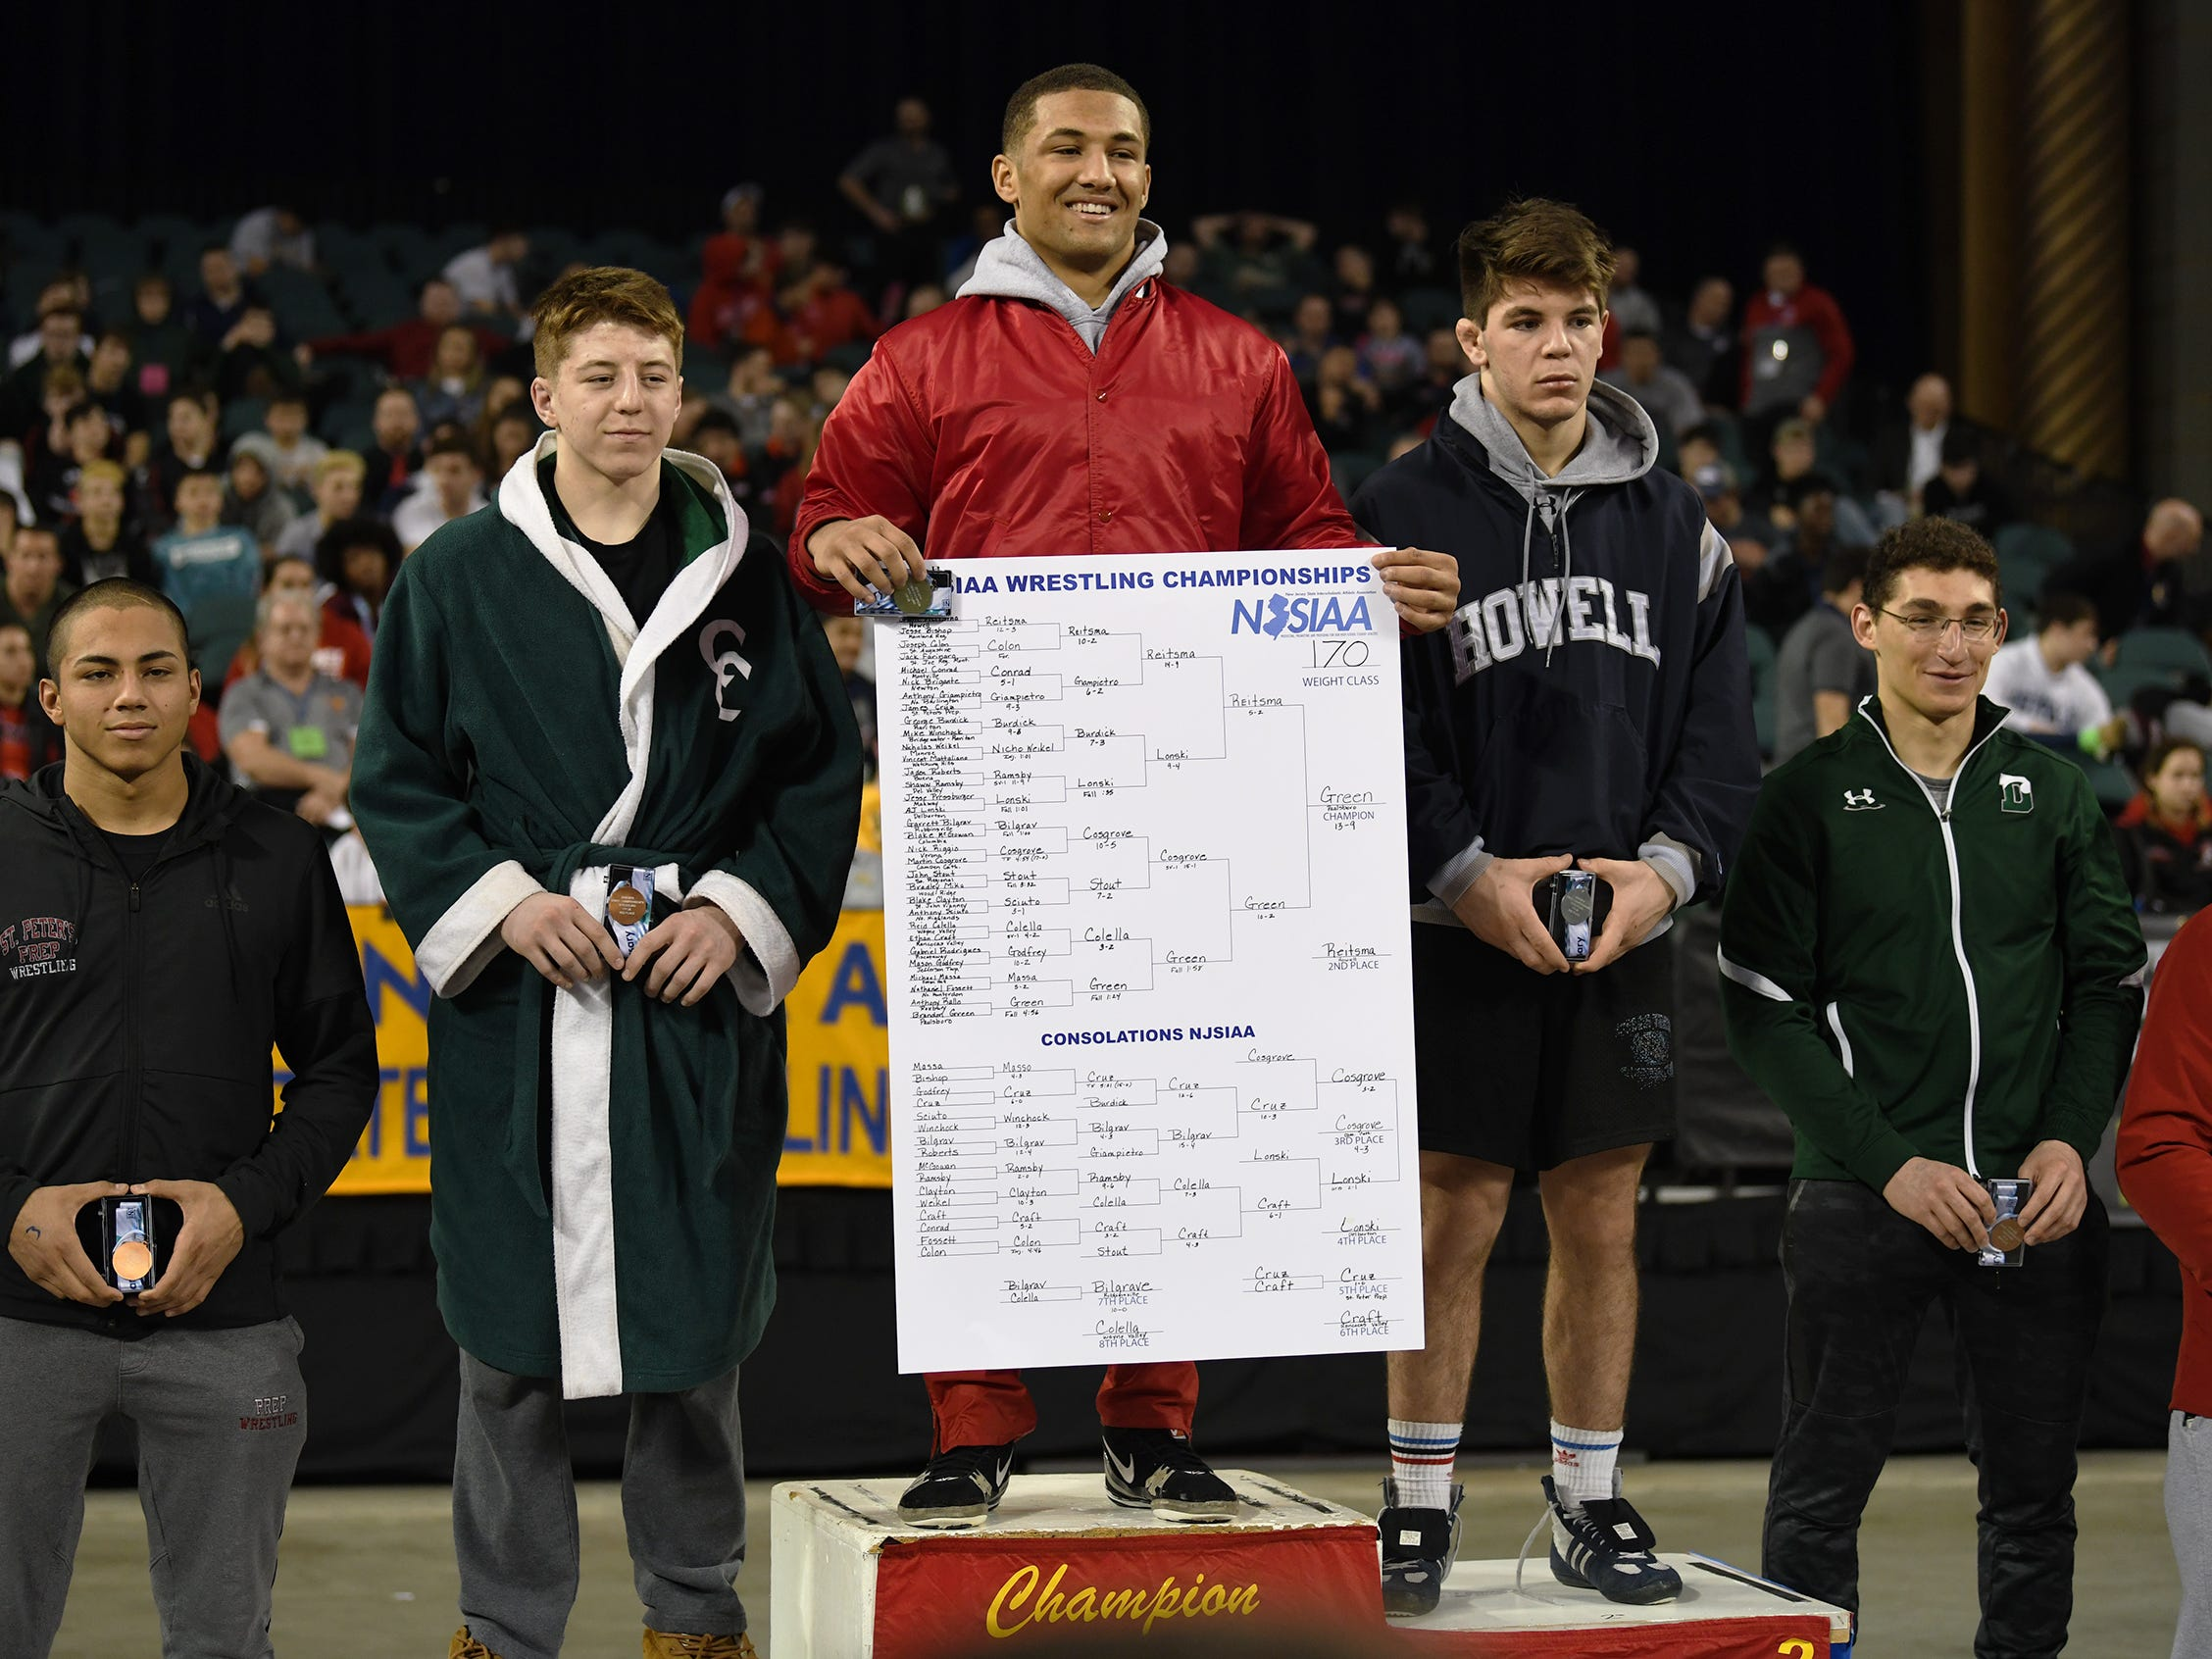 Paulsboro's Brandon Green, center, stands on top of the podium after his 13-9 win over Howell's Shane Reitsma during the 170 lb. championship bout of the 2019 NJSIAA State Wrestling Championships tournament held at Boardwalk Hall in Atlantic City on Saturday, March 2, 2019.